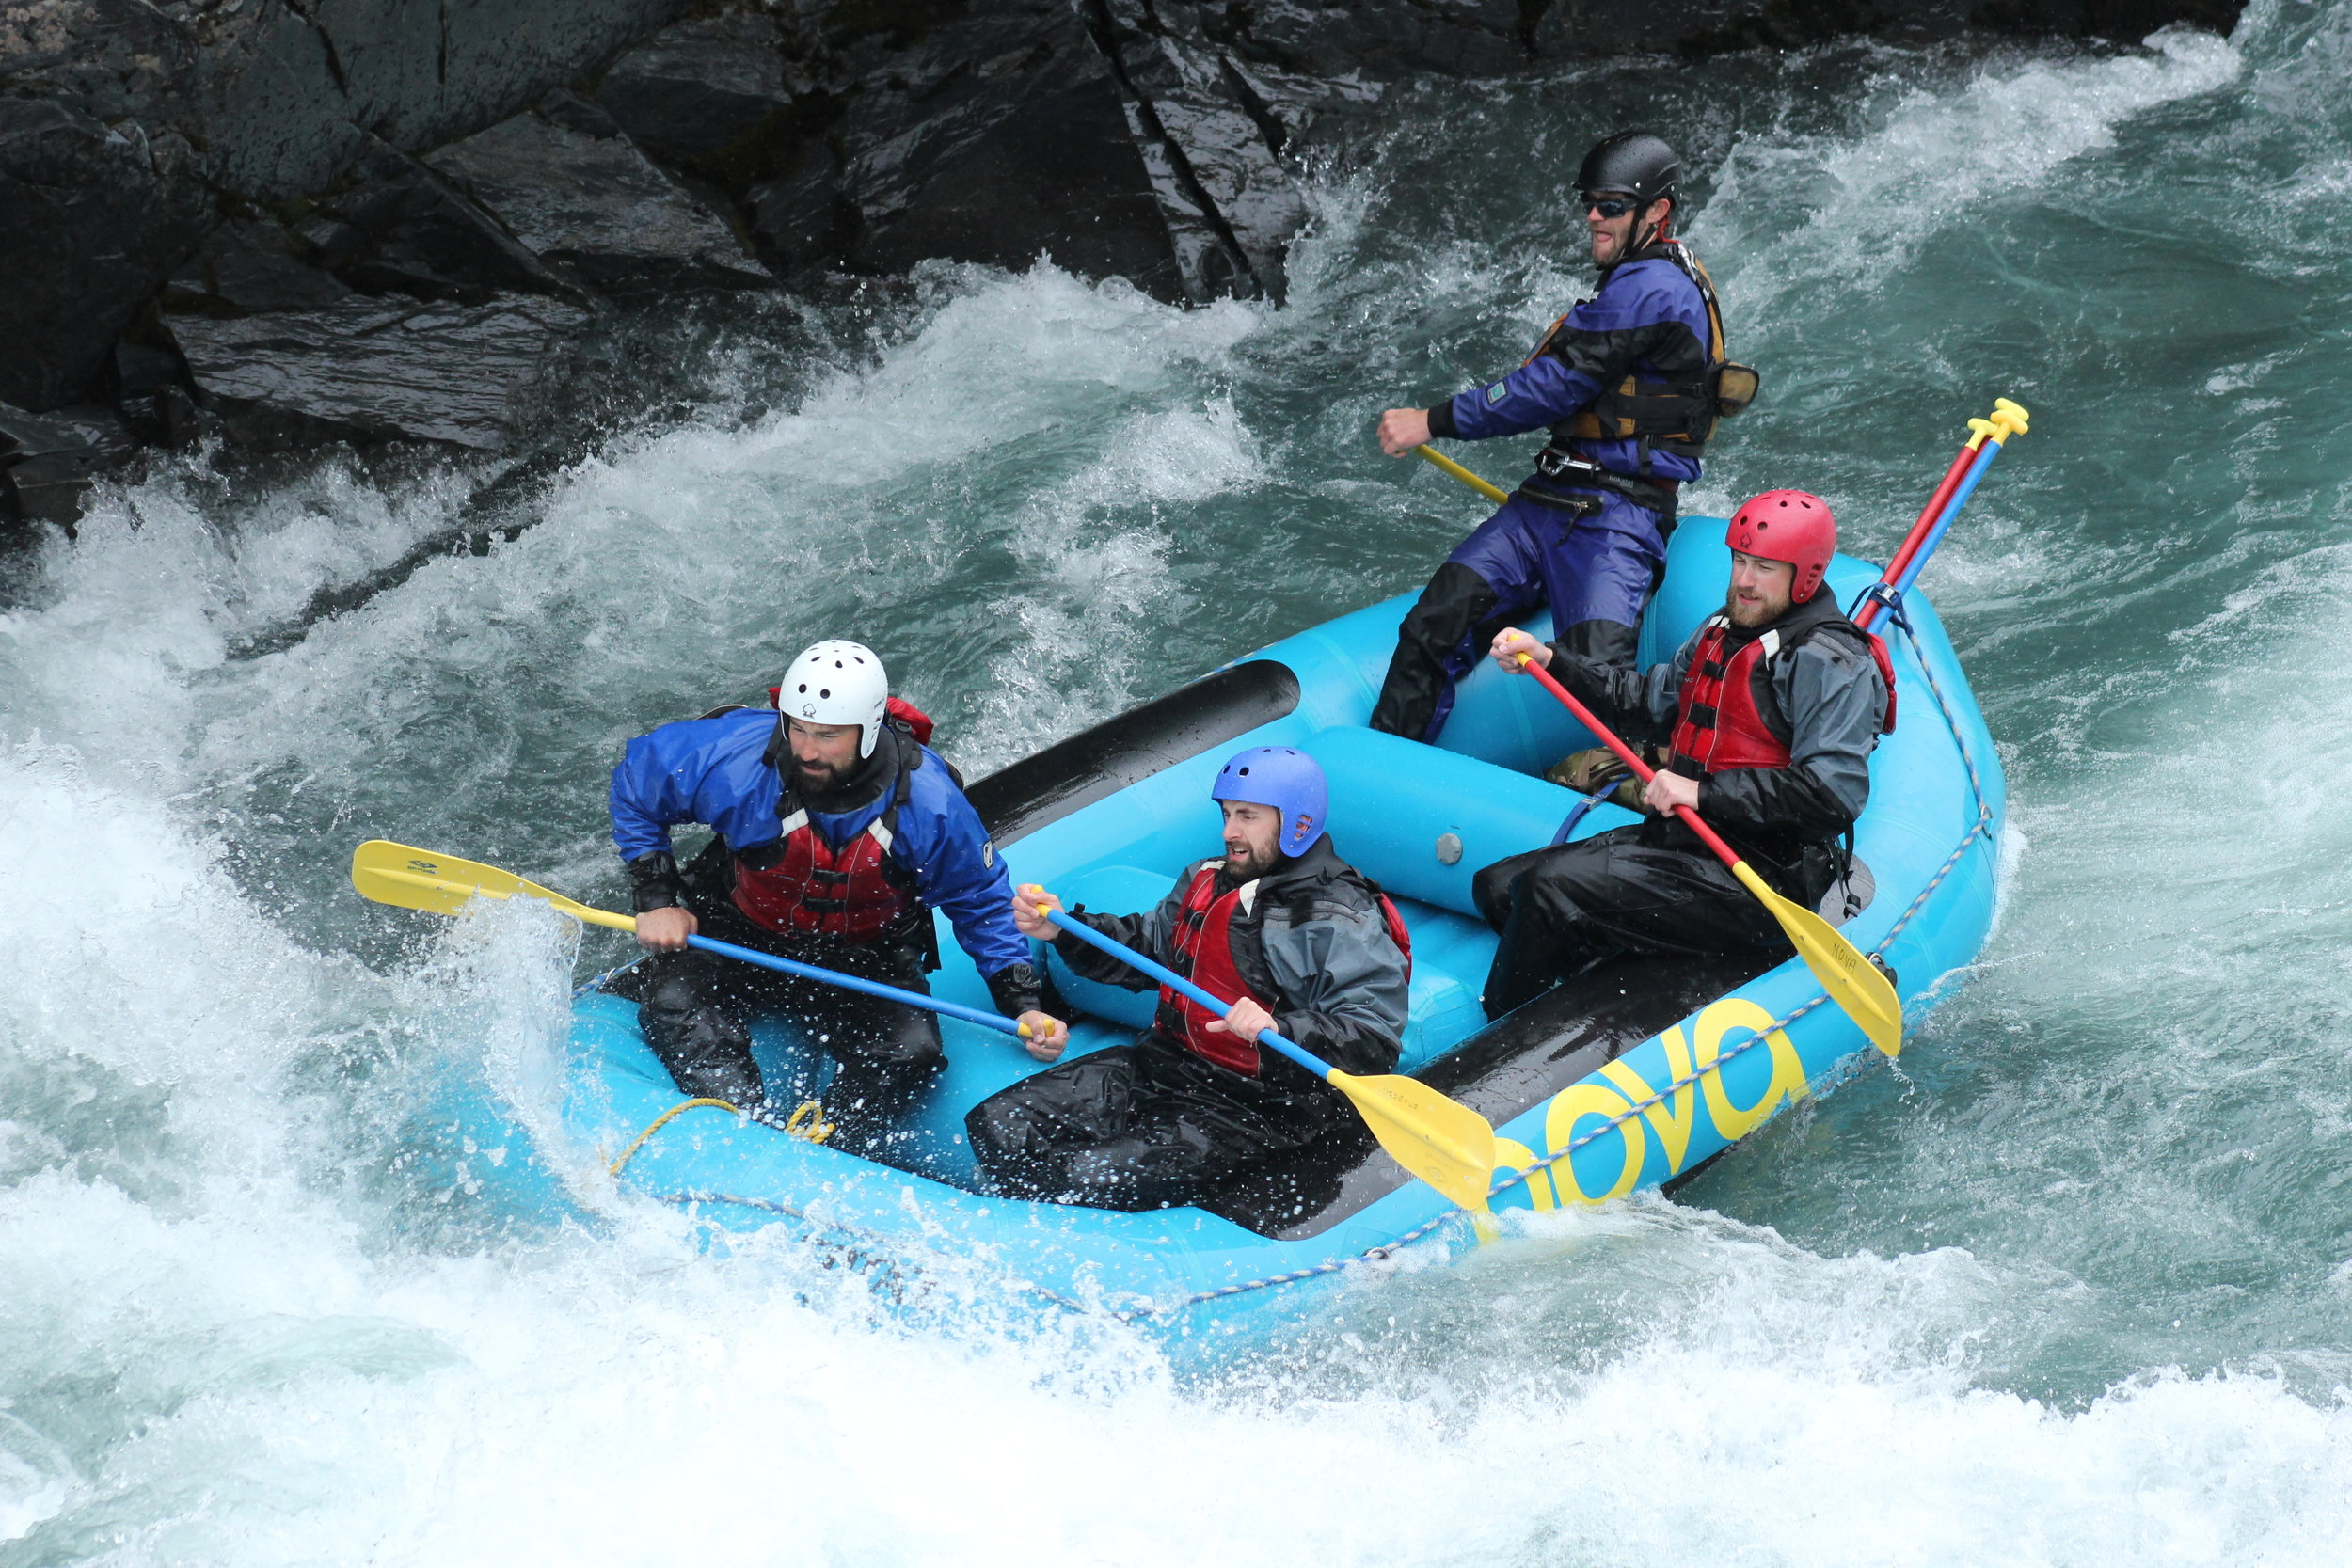 A whitewater rafting trip down Sixmile Creek near    Hope, AK    is a must-do excursion if you're up for it!